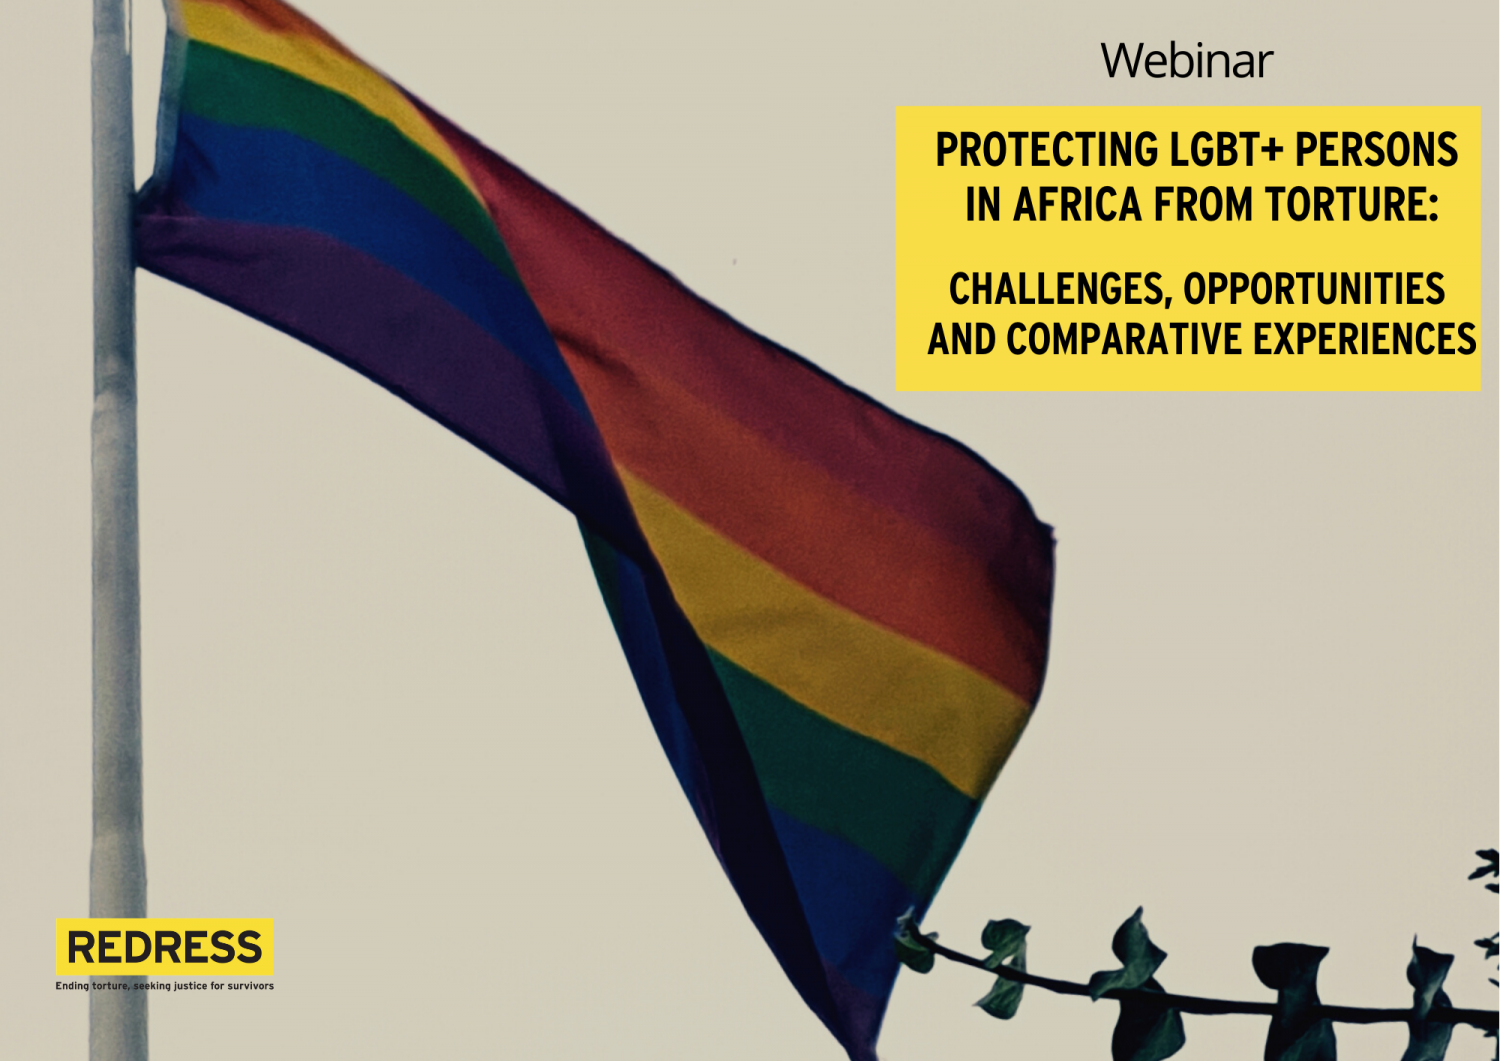 Flyer of the webinar Protecting LGBT+ Persons in Africa from Torture